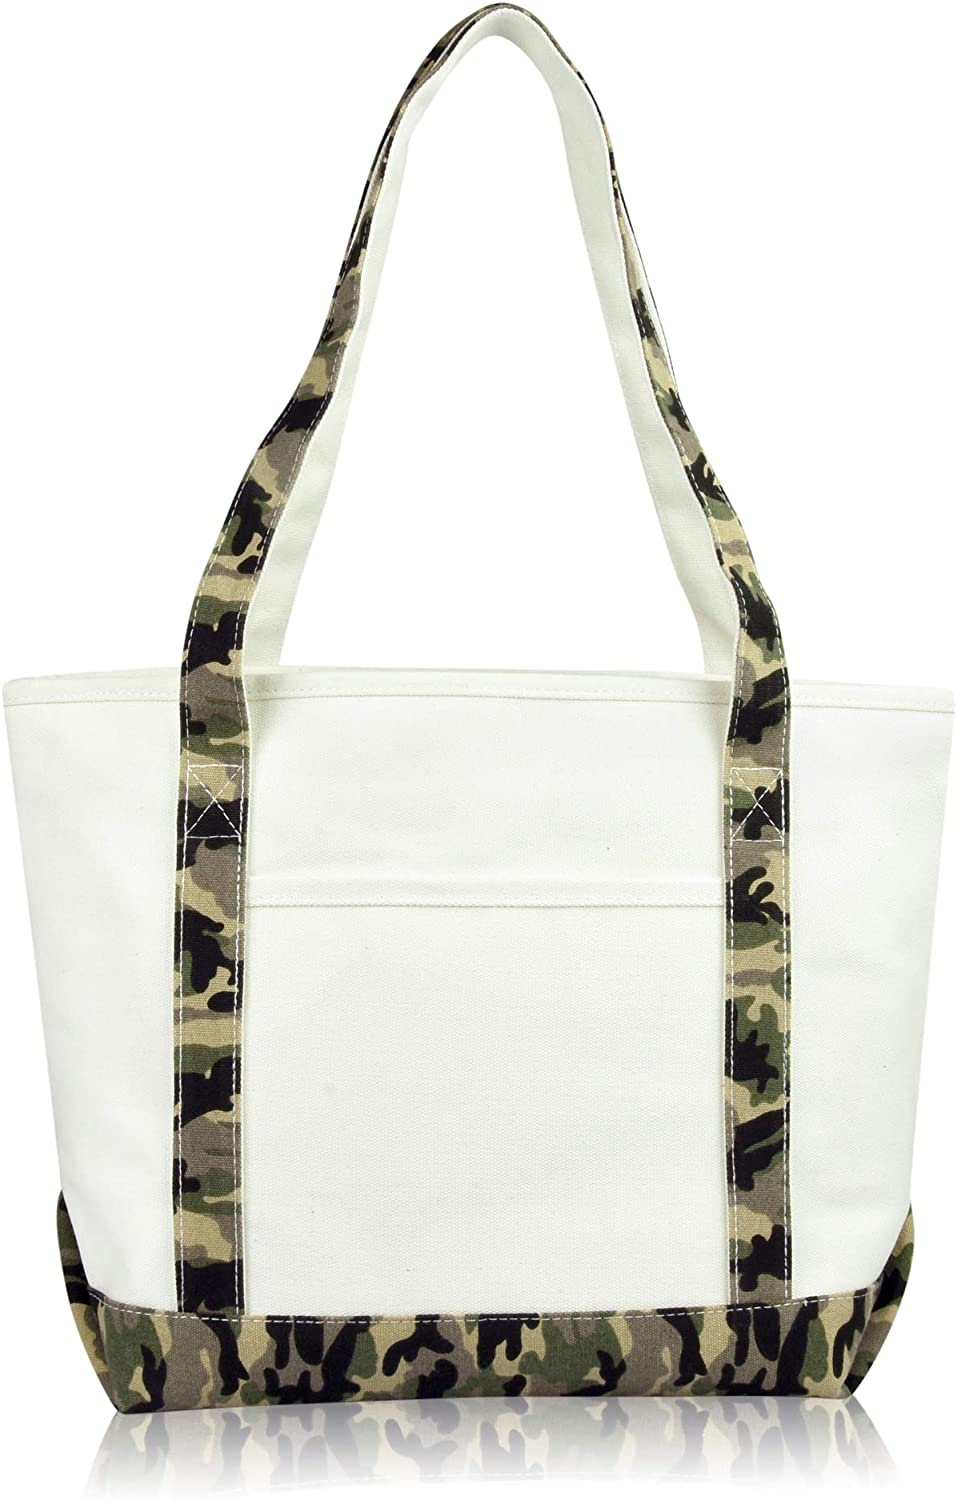 DALIX Daily Shoulder Tote Bag Premium Cotton in Green Camouflage